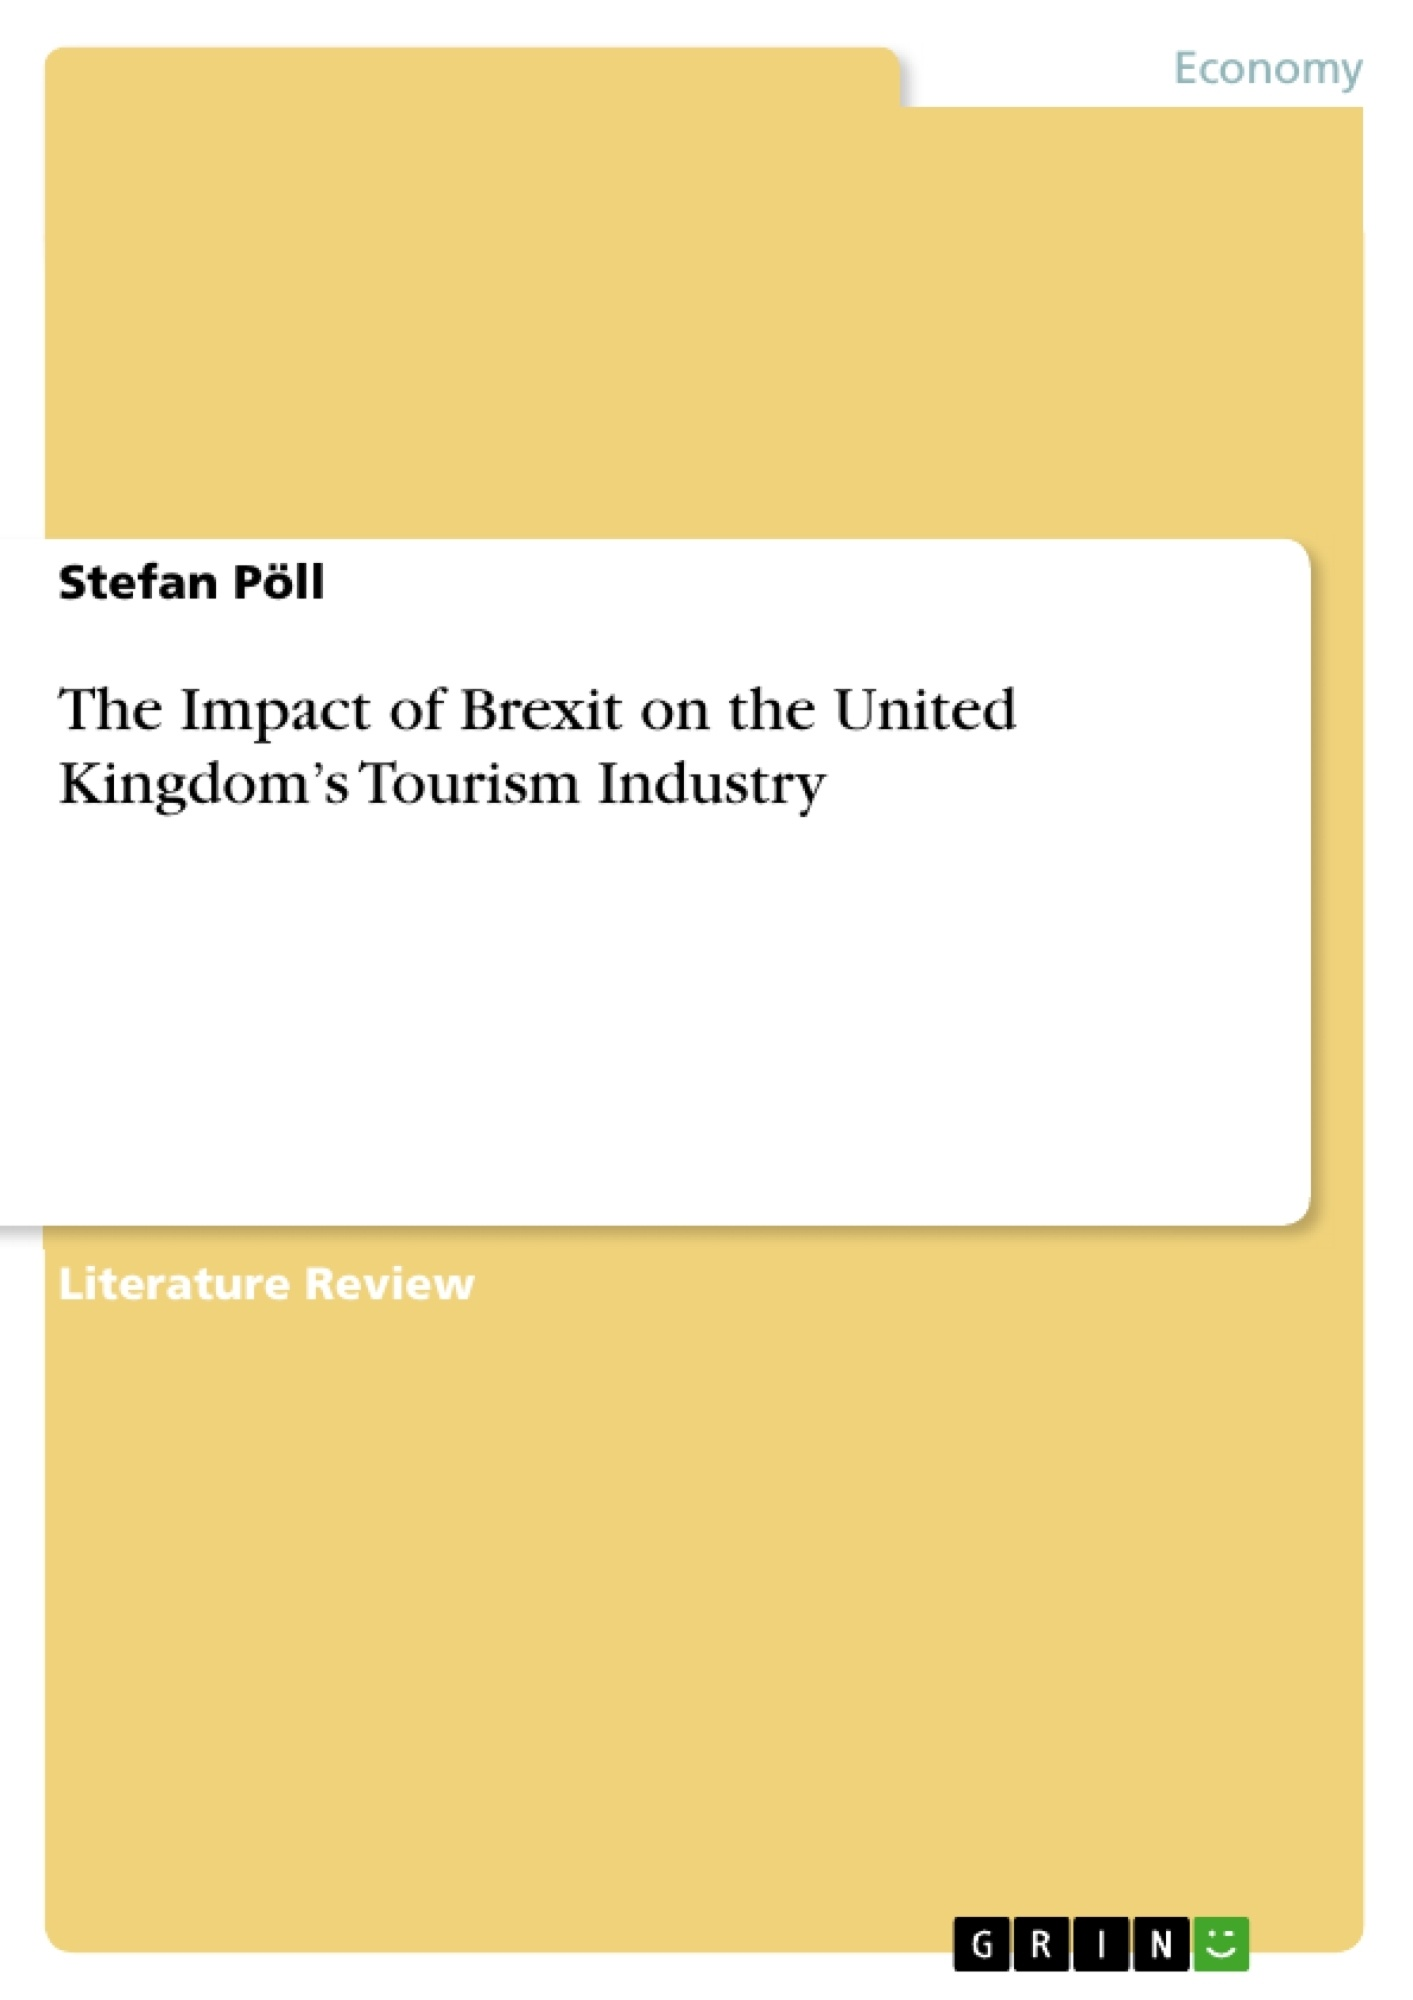 Title: The Impact of Brexit on the United Kingdom's Tourism Industry